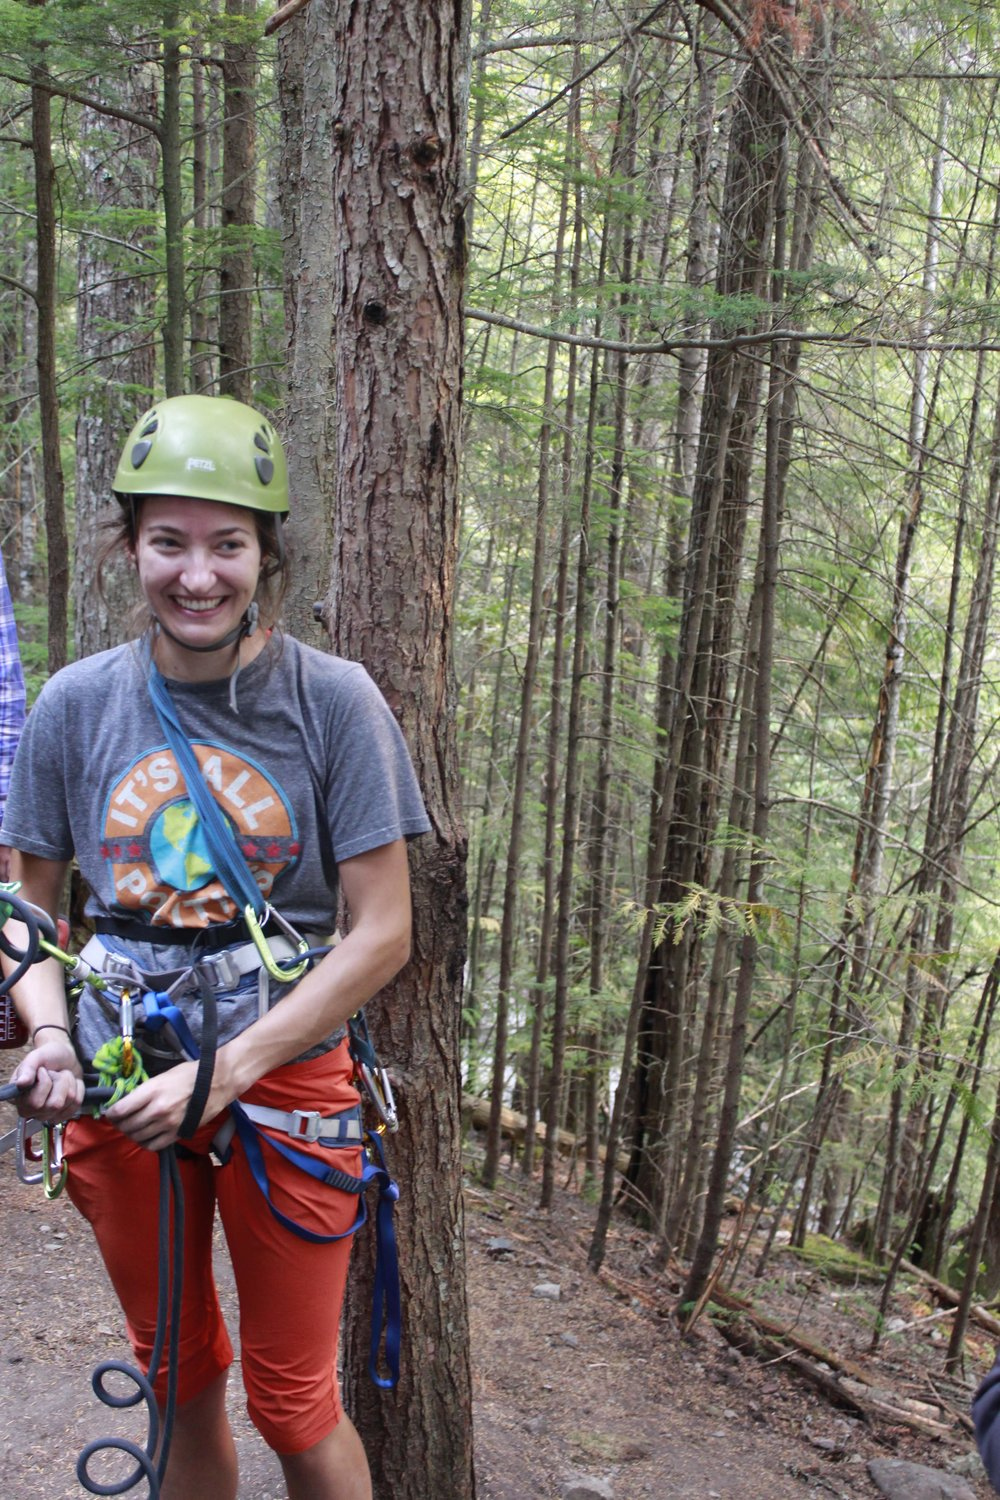 Robin Smith belaying for another climbing in Squamish during our sport climbing day!